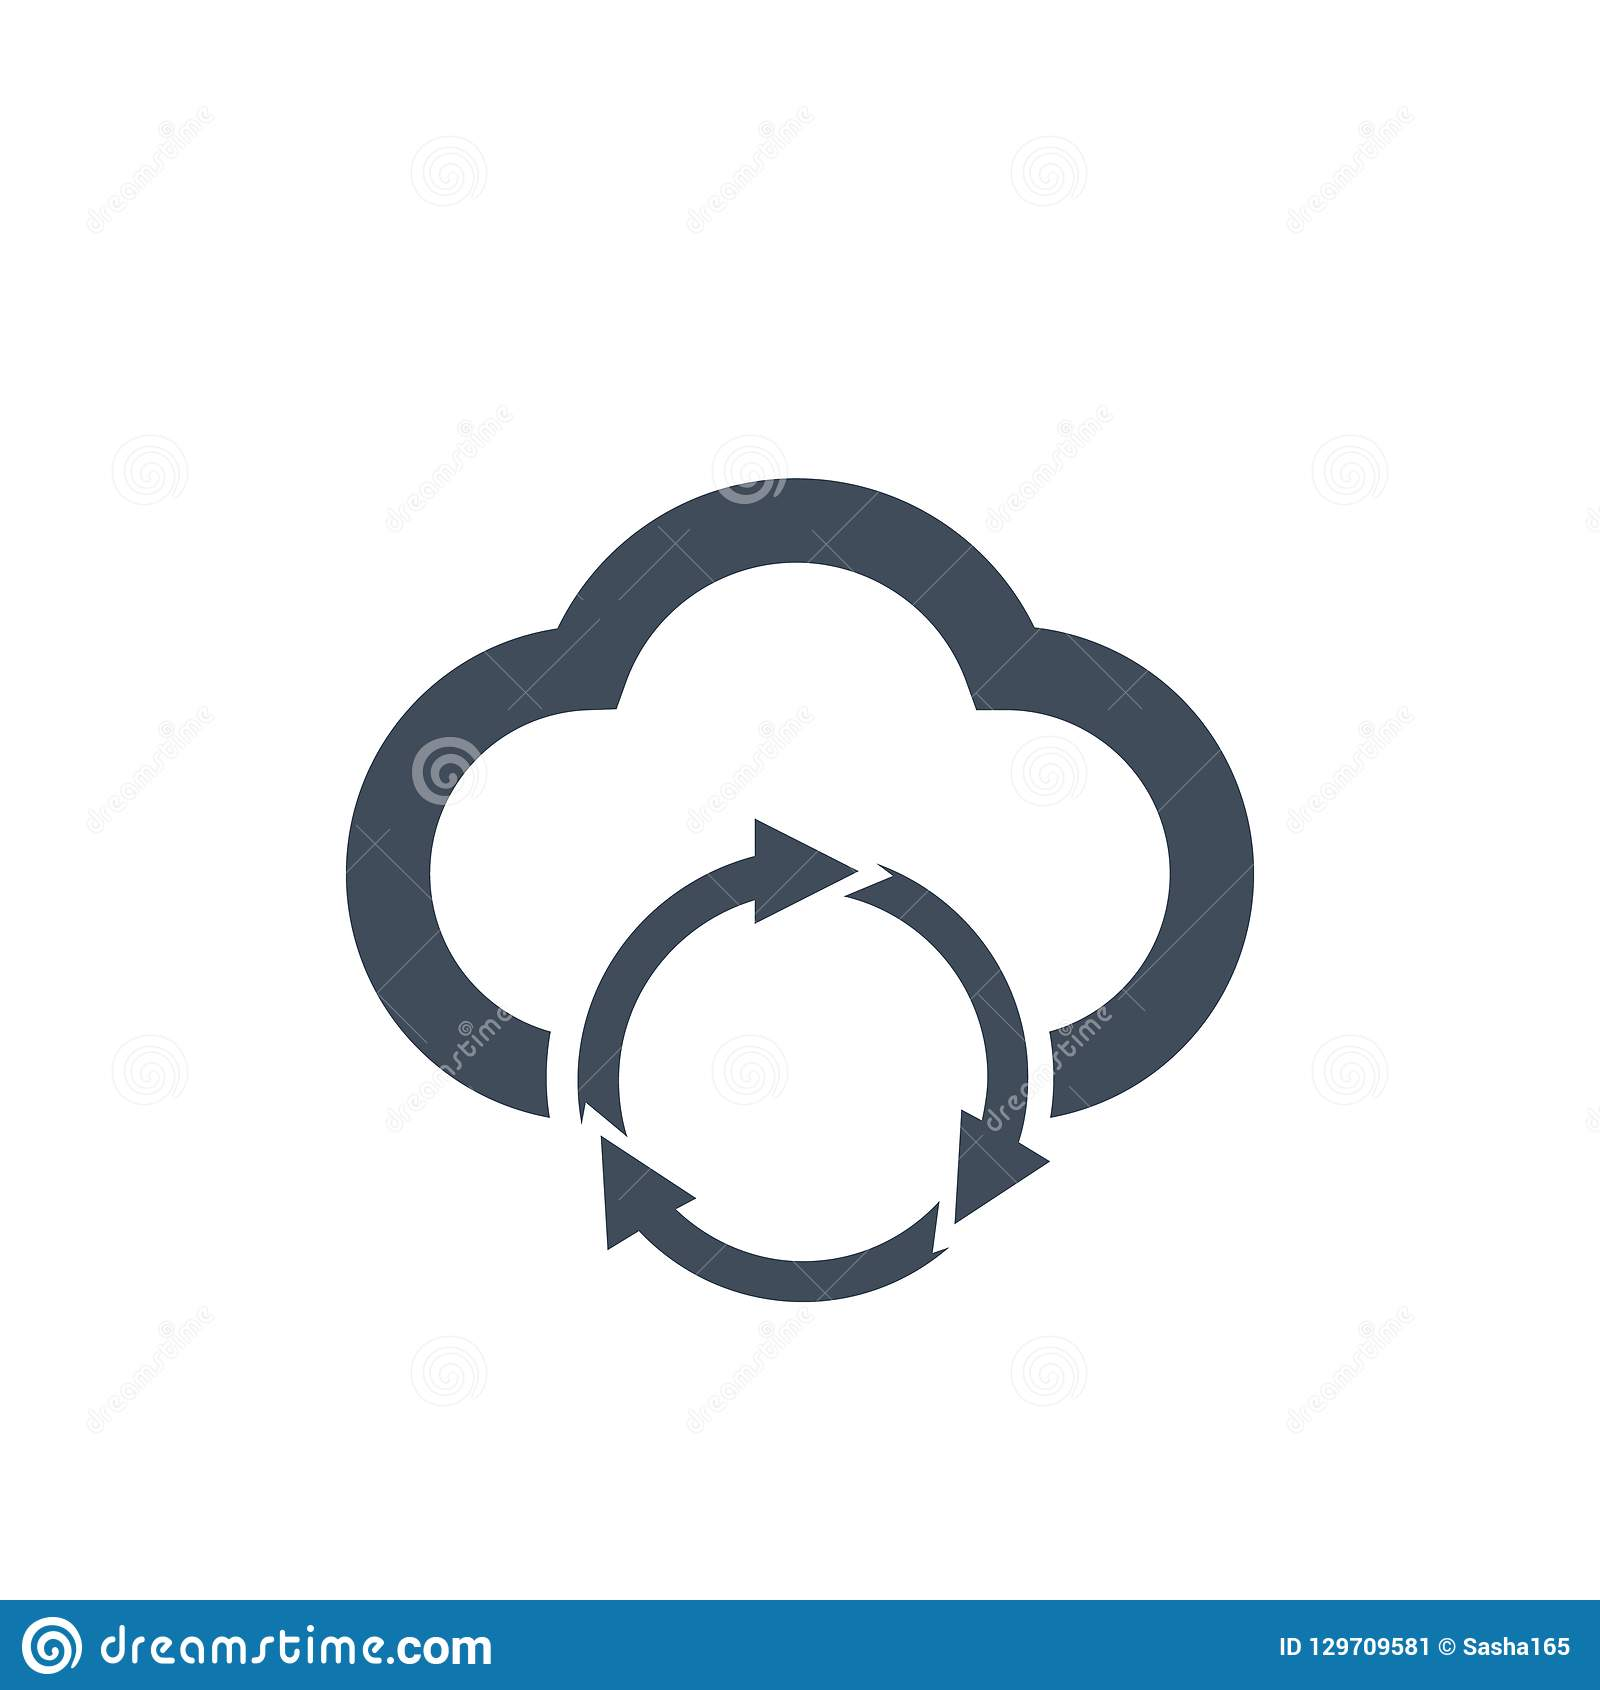 Cloud data sync refresh icon for apps and websites, vector illustration.